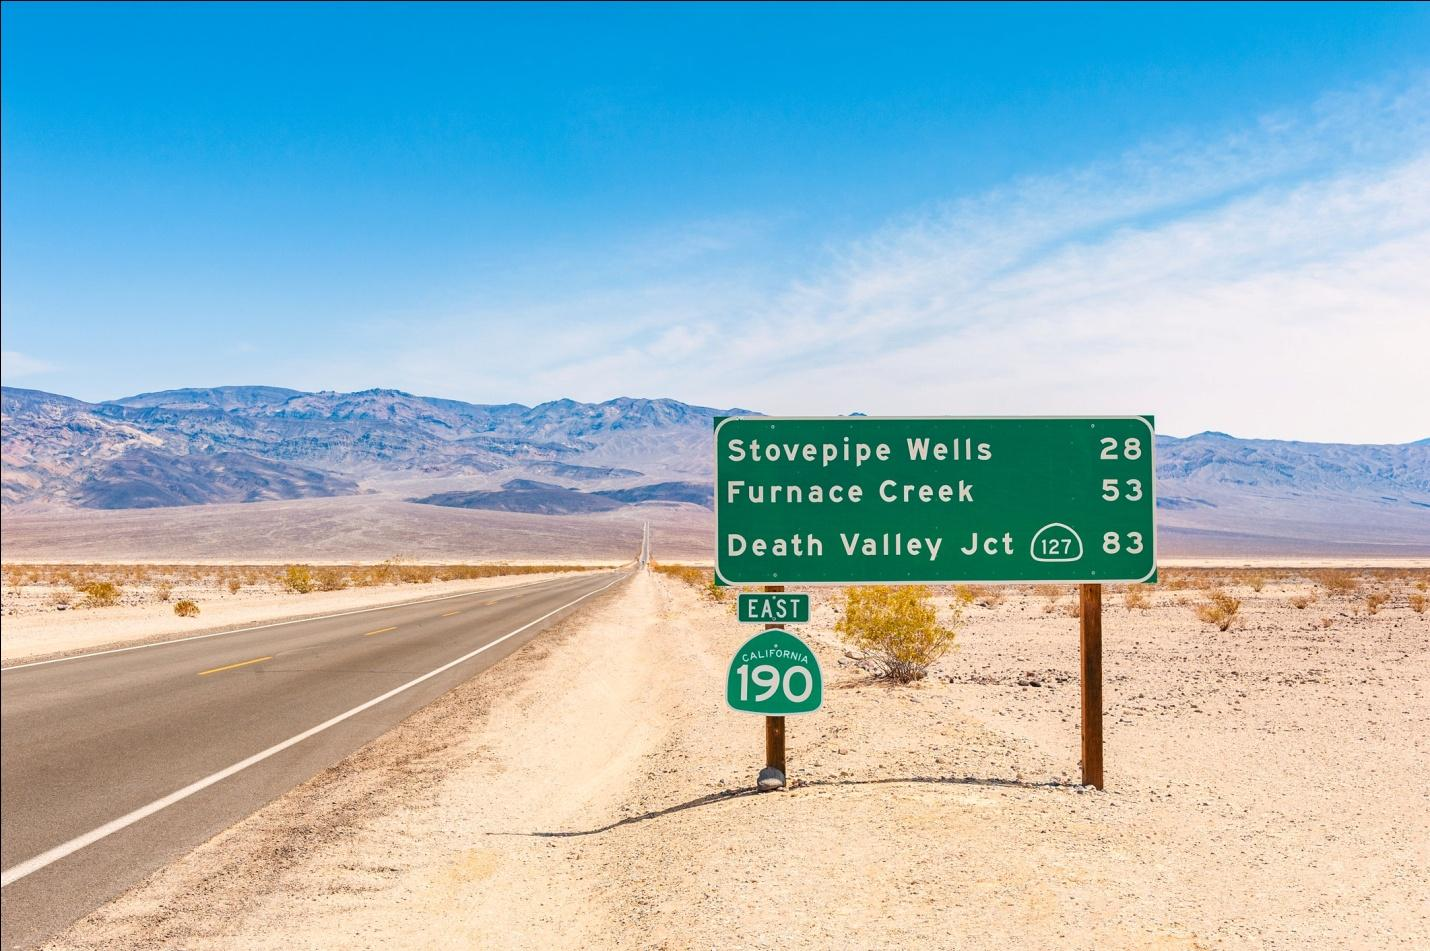 https://www.telegraph.co.uk/content/dam/Travel/2018/July/death-valley-road-sign.jpg